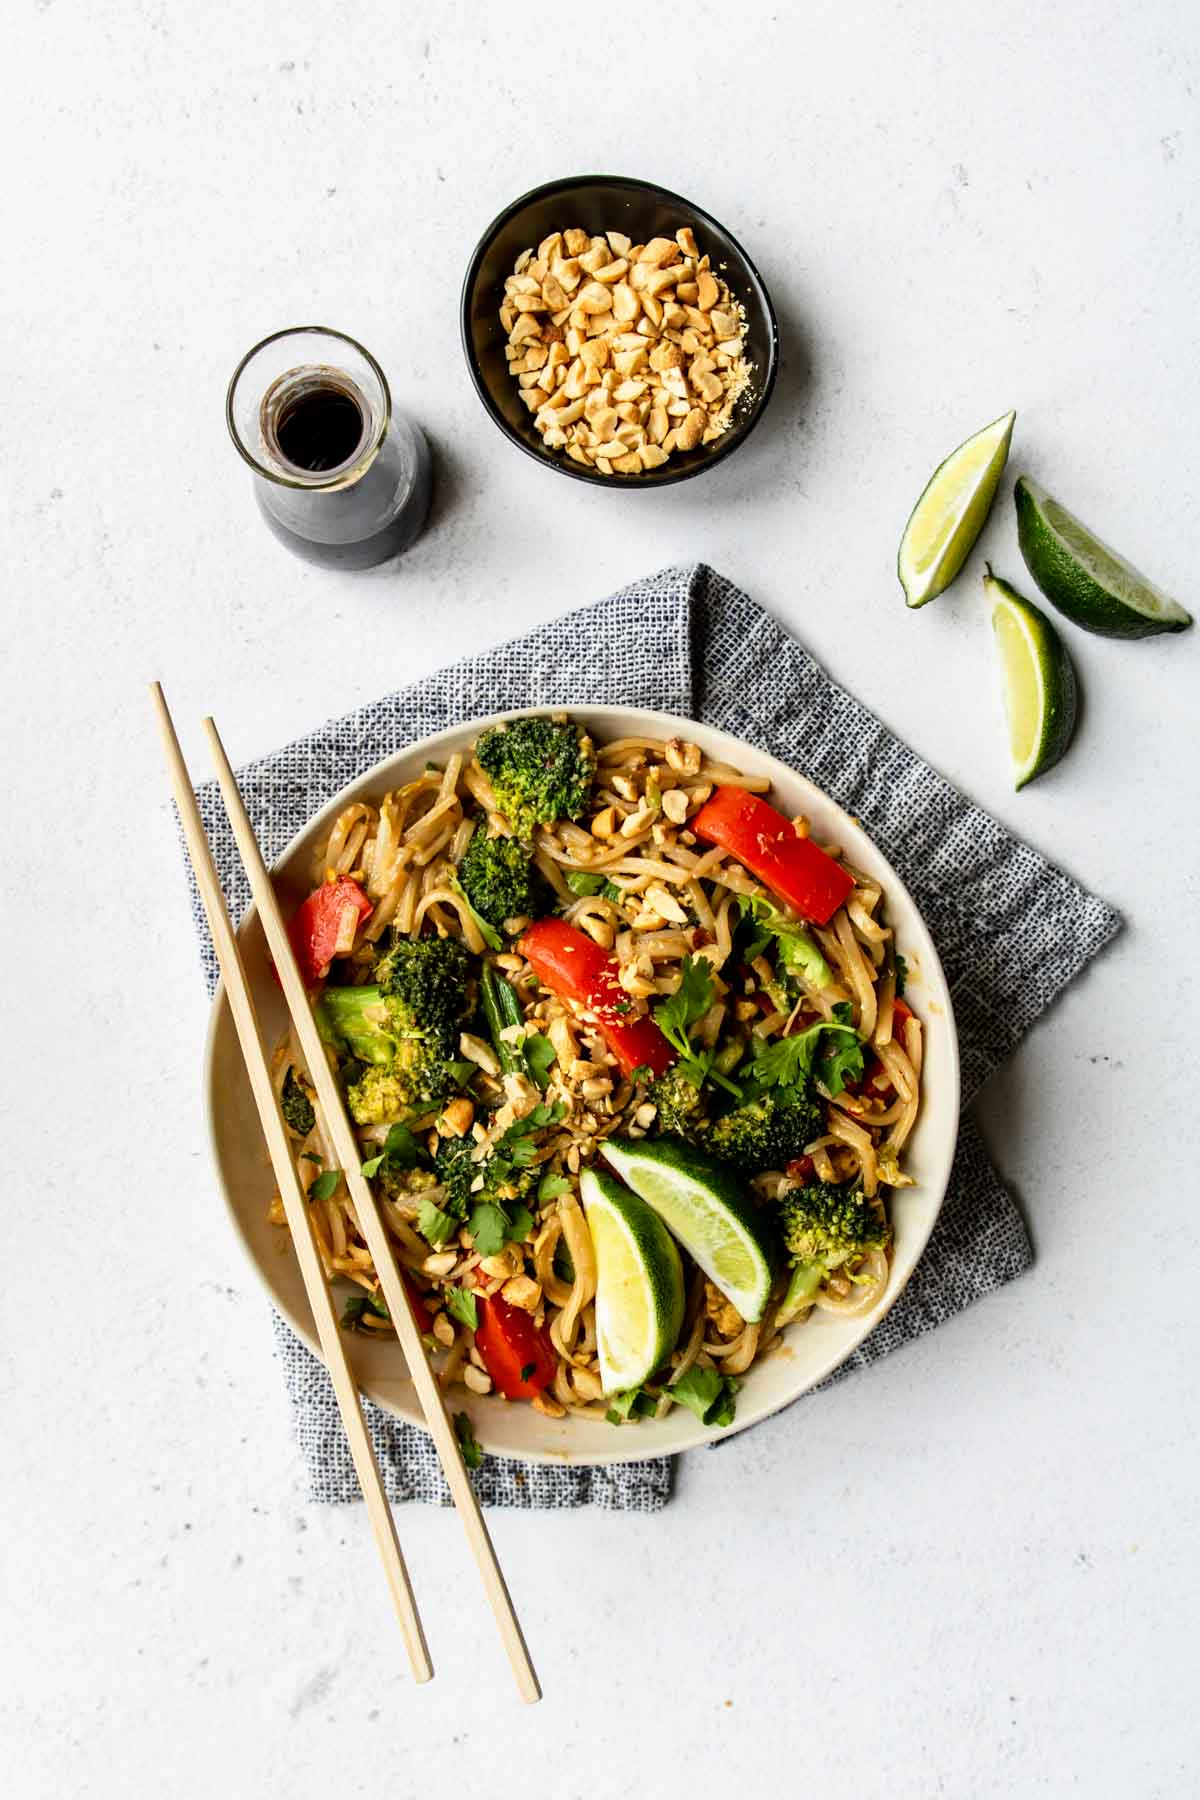 a bowl of Pad Thai with peanuts, limes and soy sauce to the side